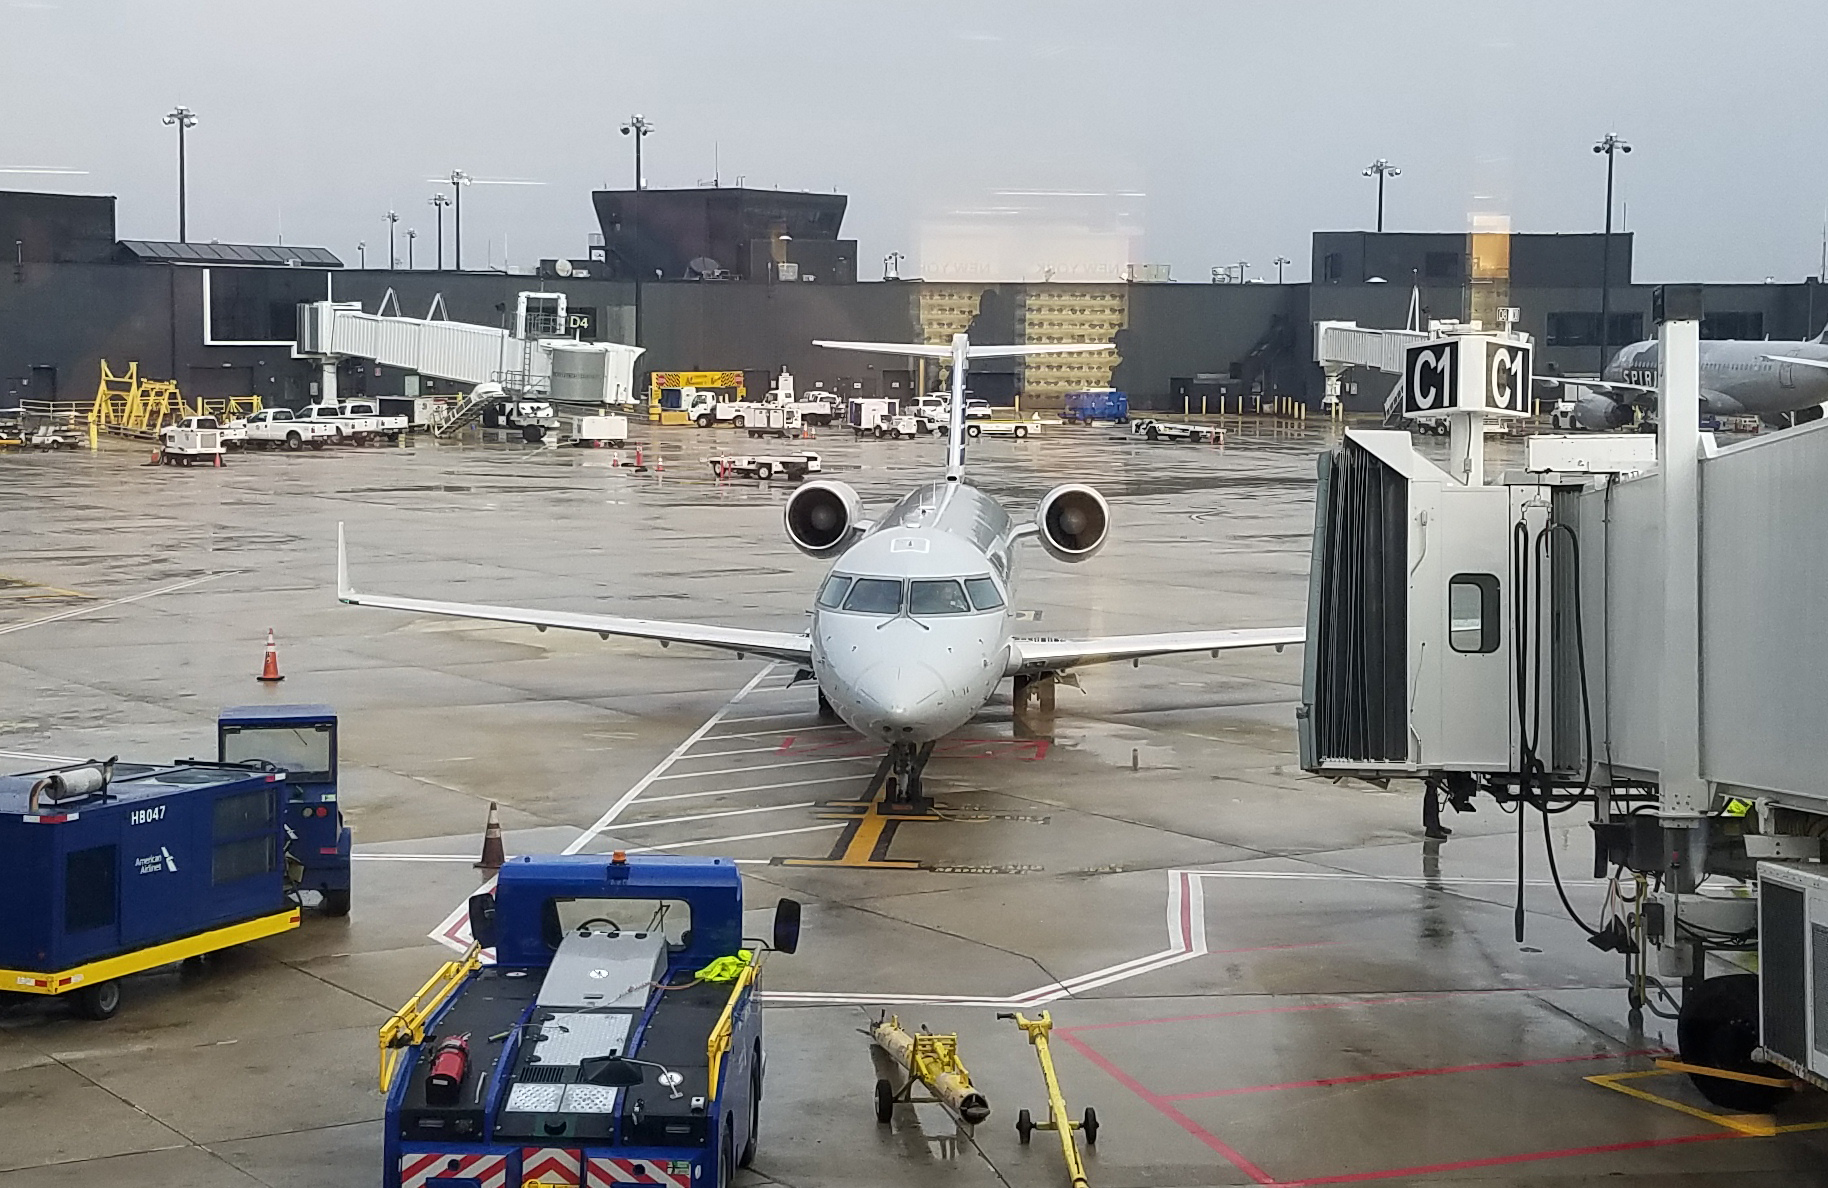 American Airlines CRJ-200 Review (Economy) – 'Twas the Worst of Times